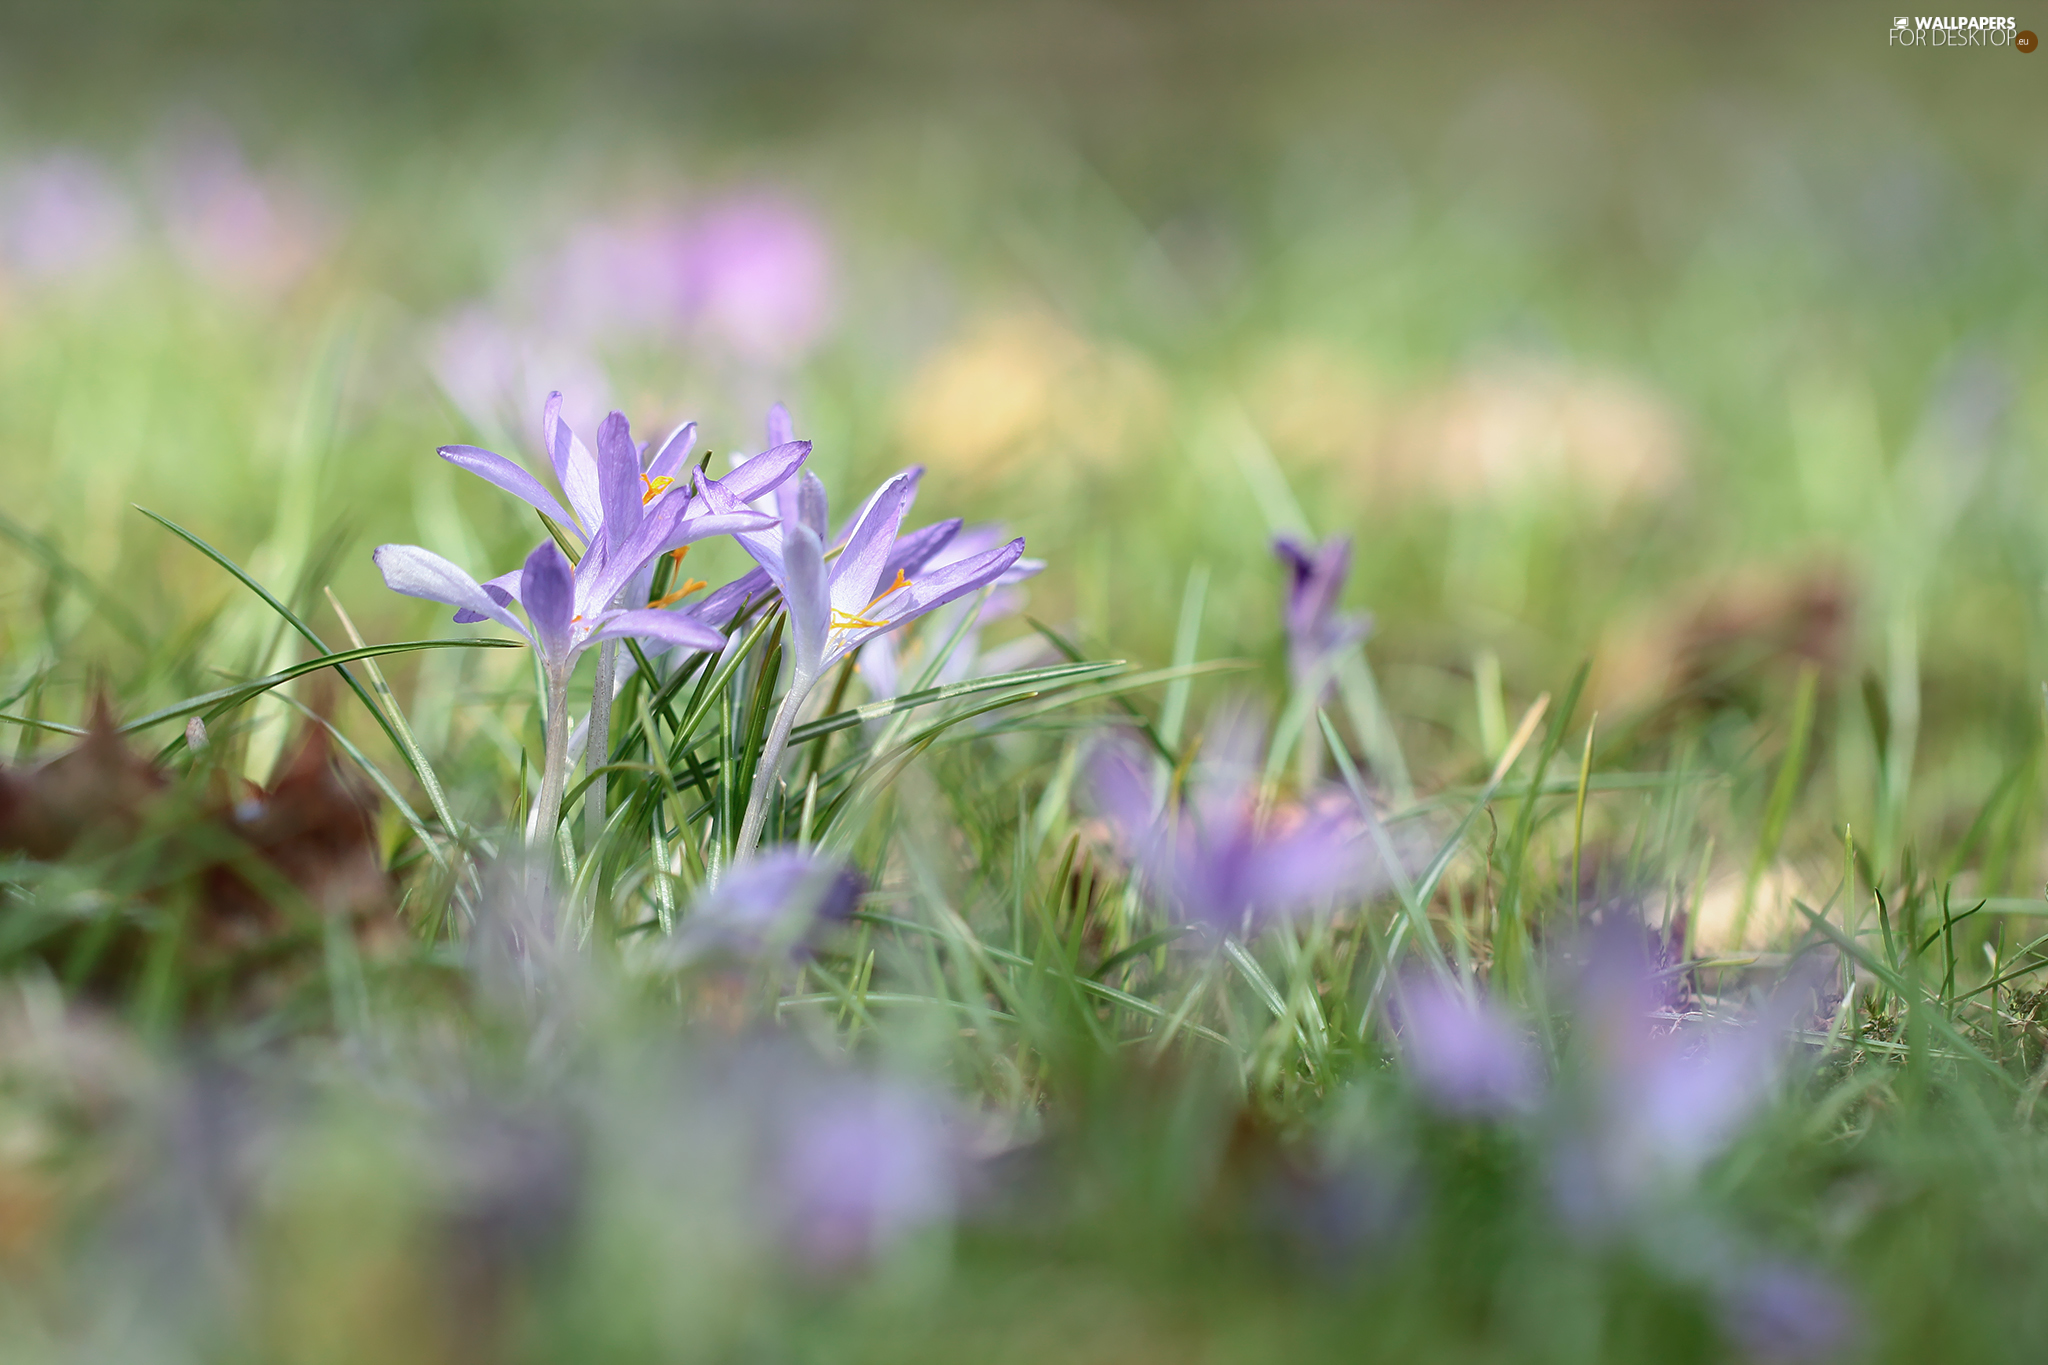 purple, Flowers, grass, crocuses